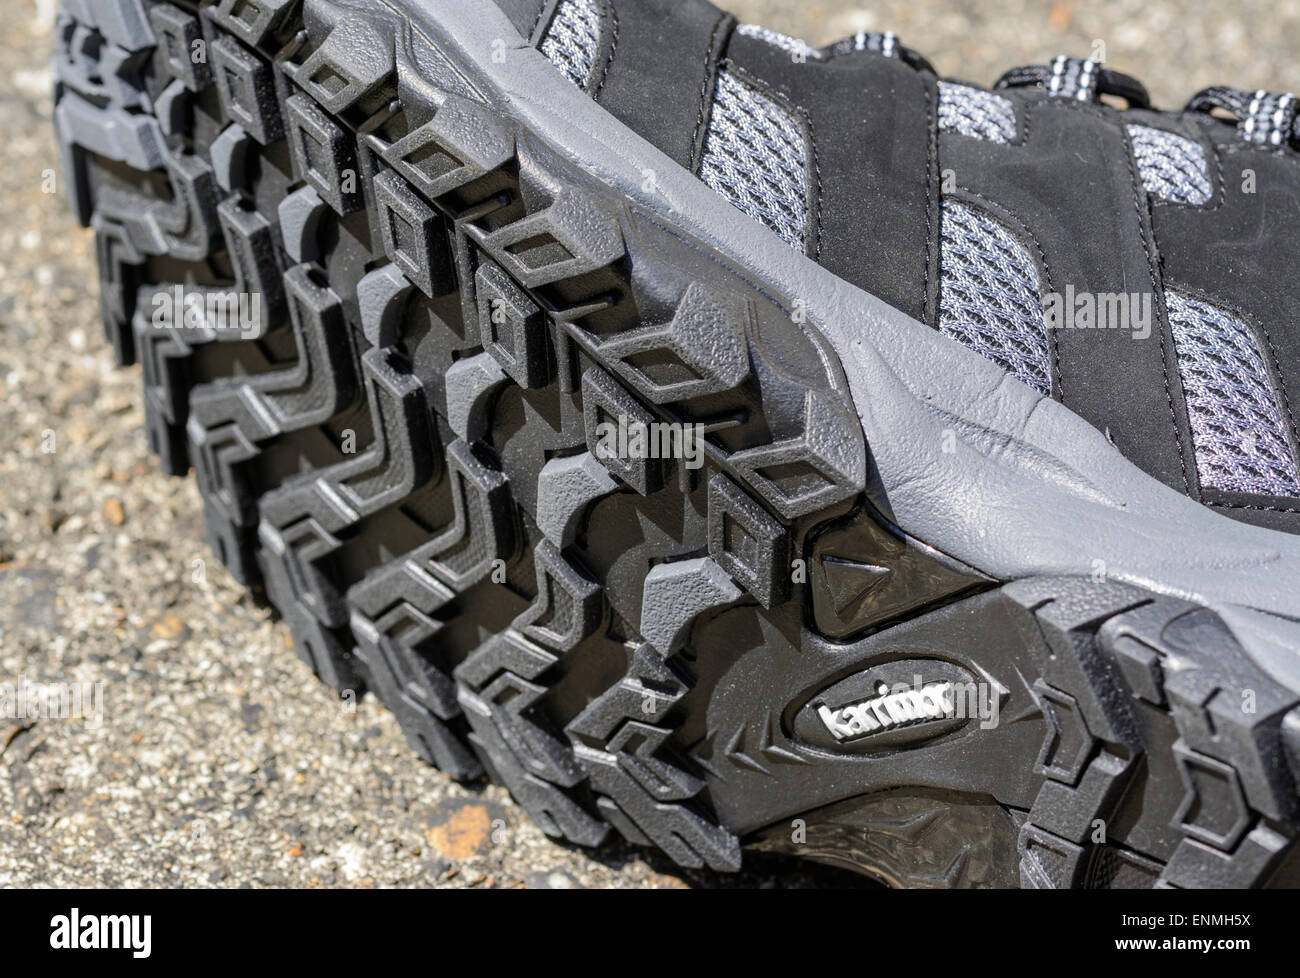 Closeup of the underside of a Karrimor training shoe on the ground. - Stock Image